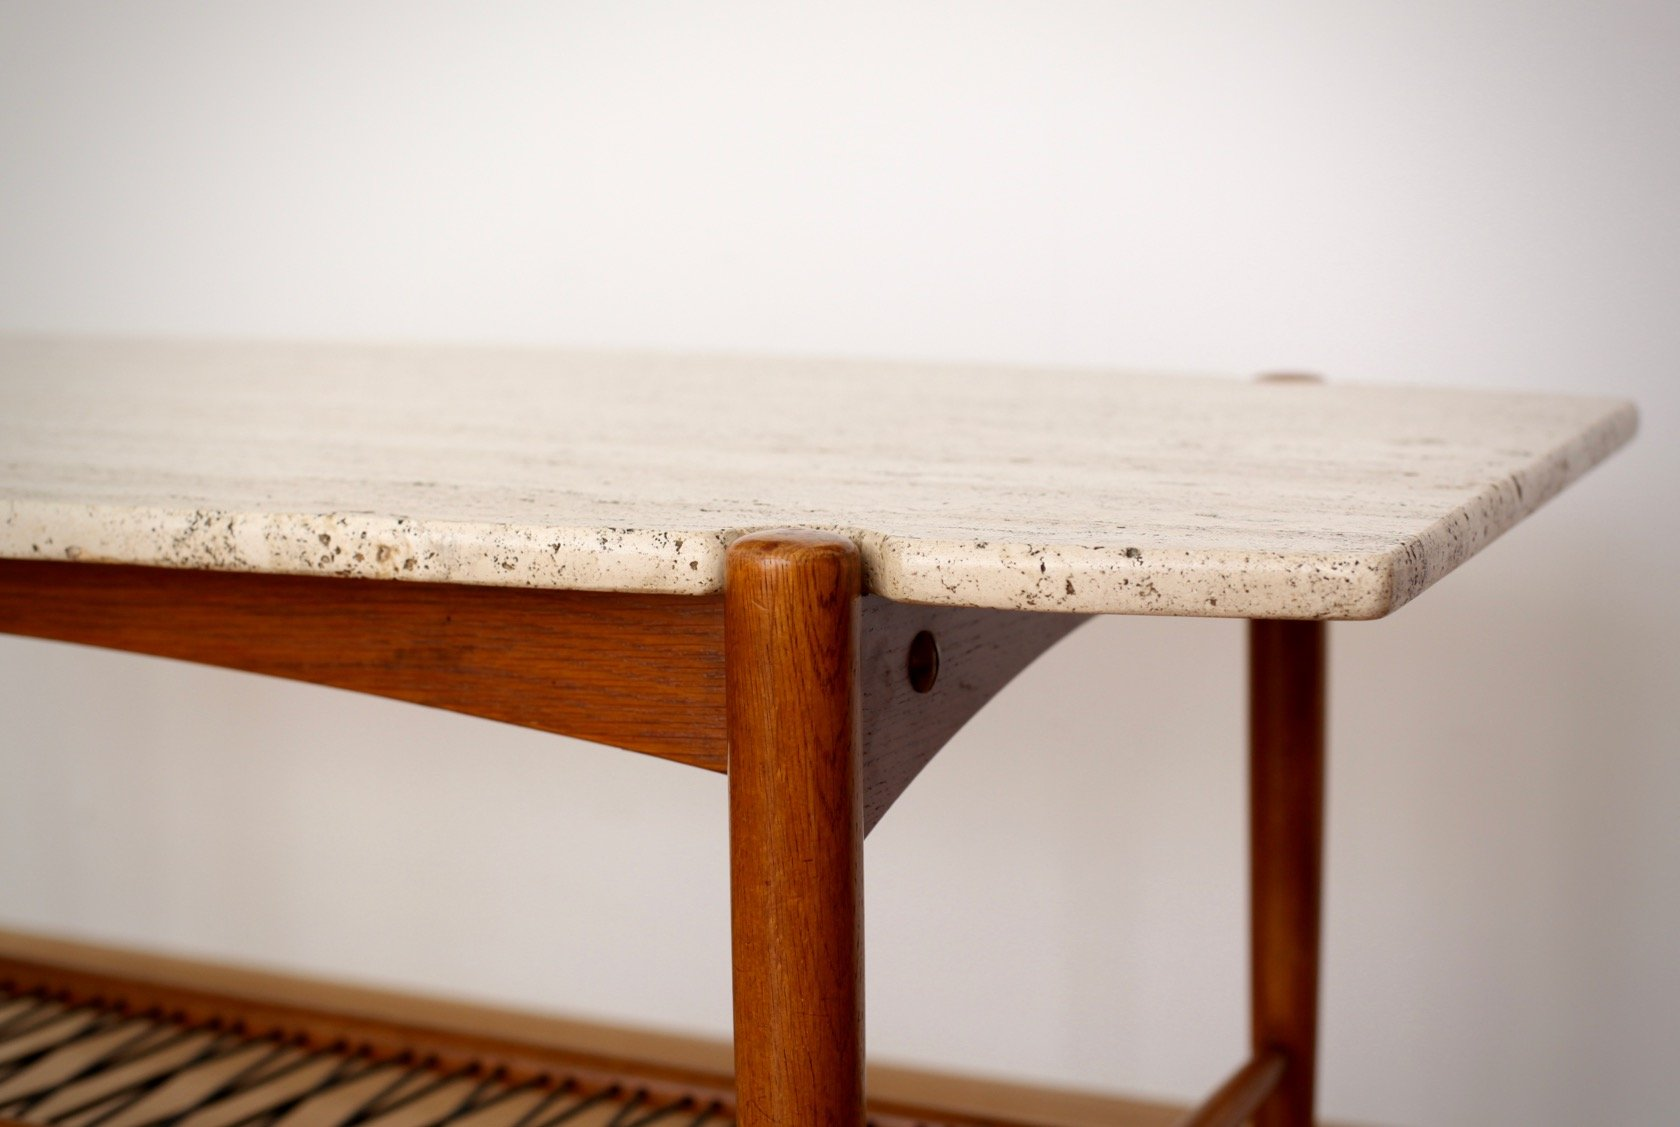 Surfboard Shaped Coffee Table With Travertine Top, 1950s